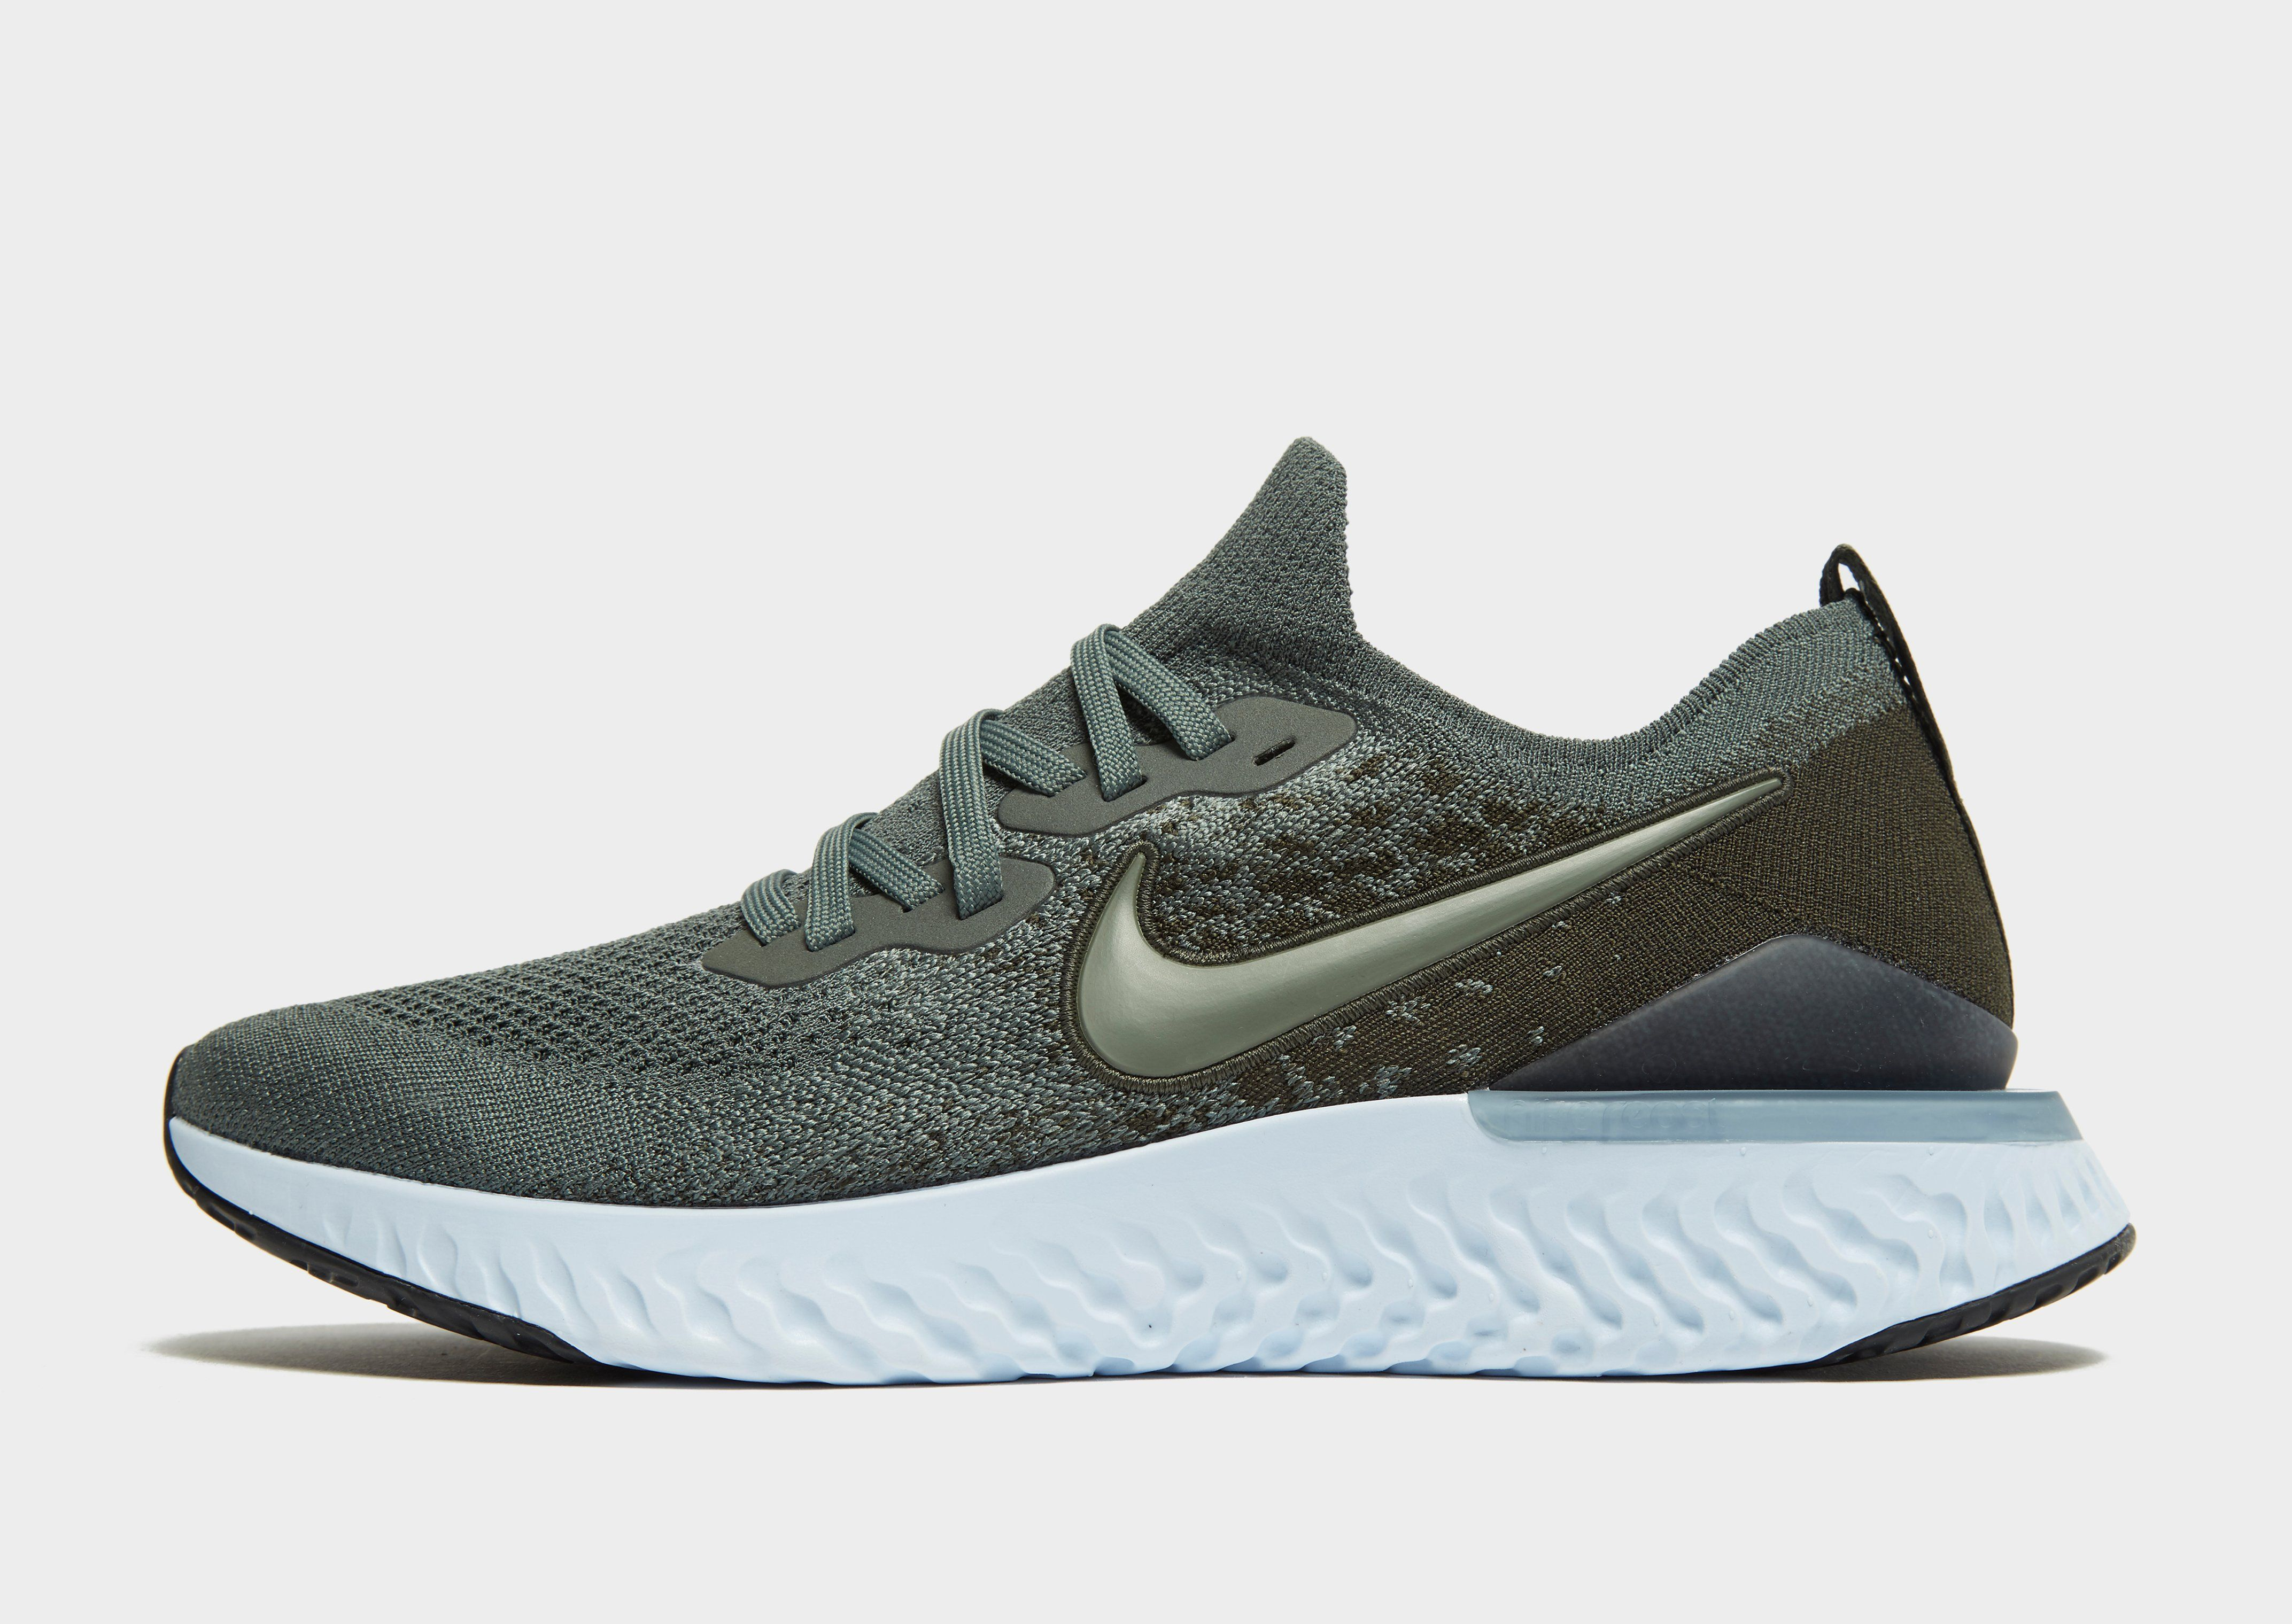 official photos ee9e8 daae4 NIKE Nike Epic React Flyknit 2 Men s Running Shoe   JD Sports